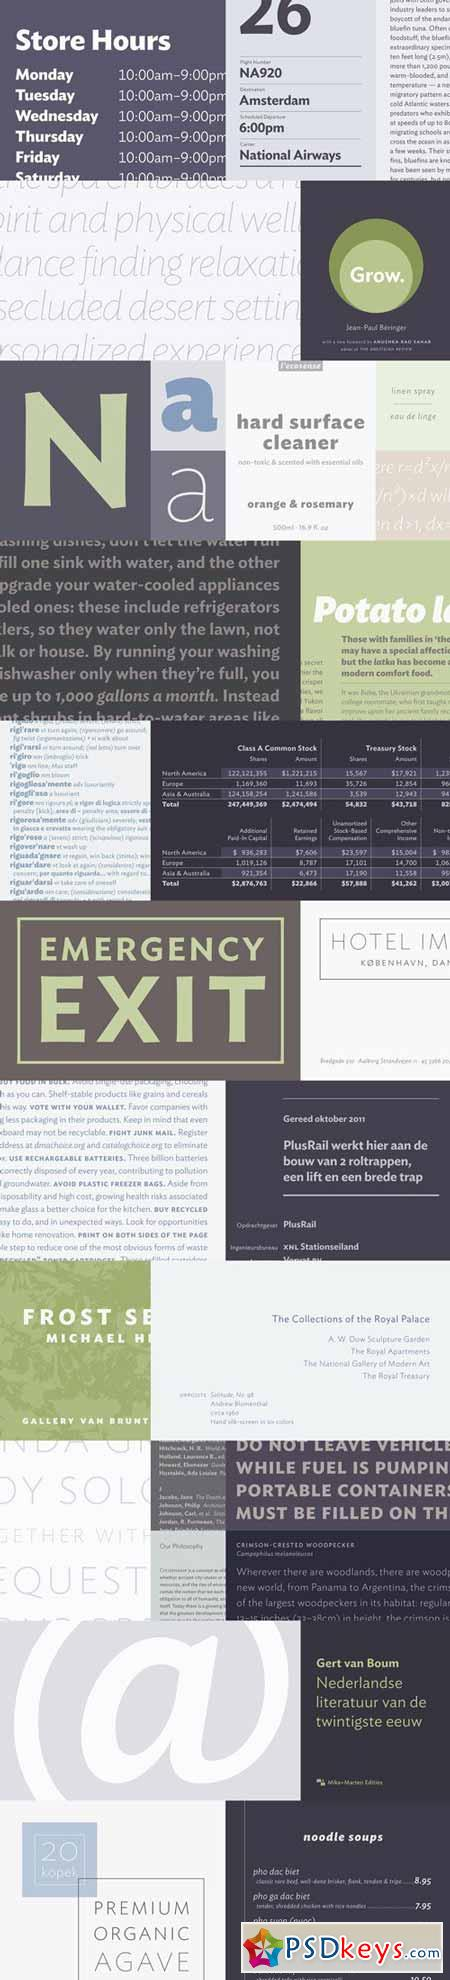 Ideal Sans Font Family $399 Complete Family